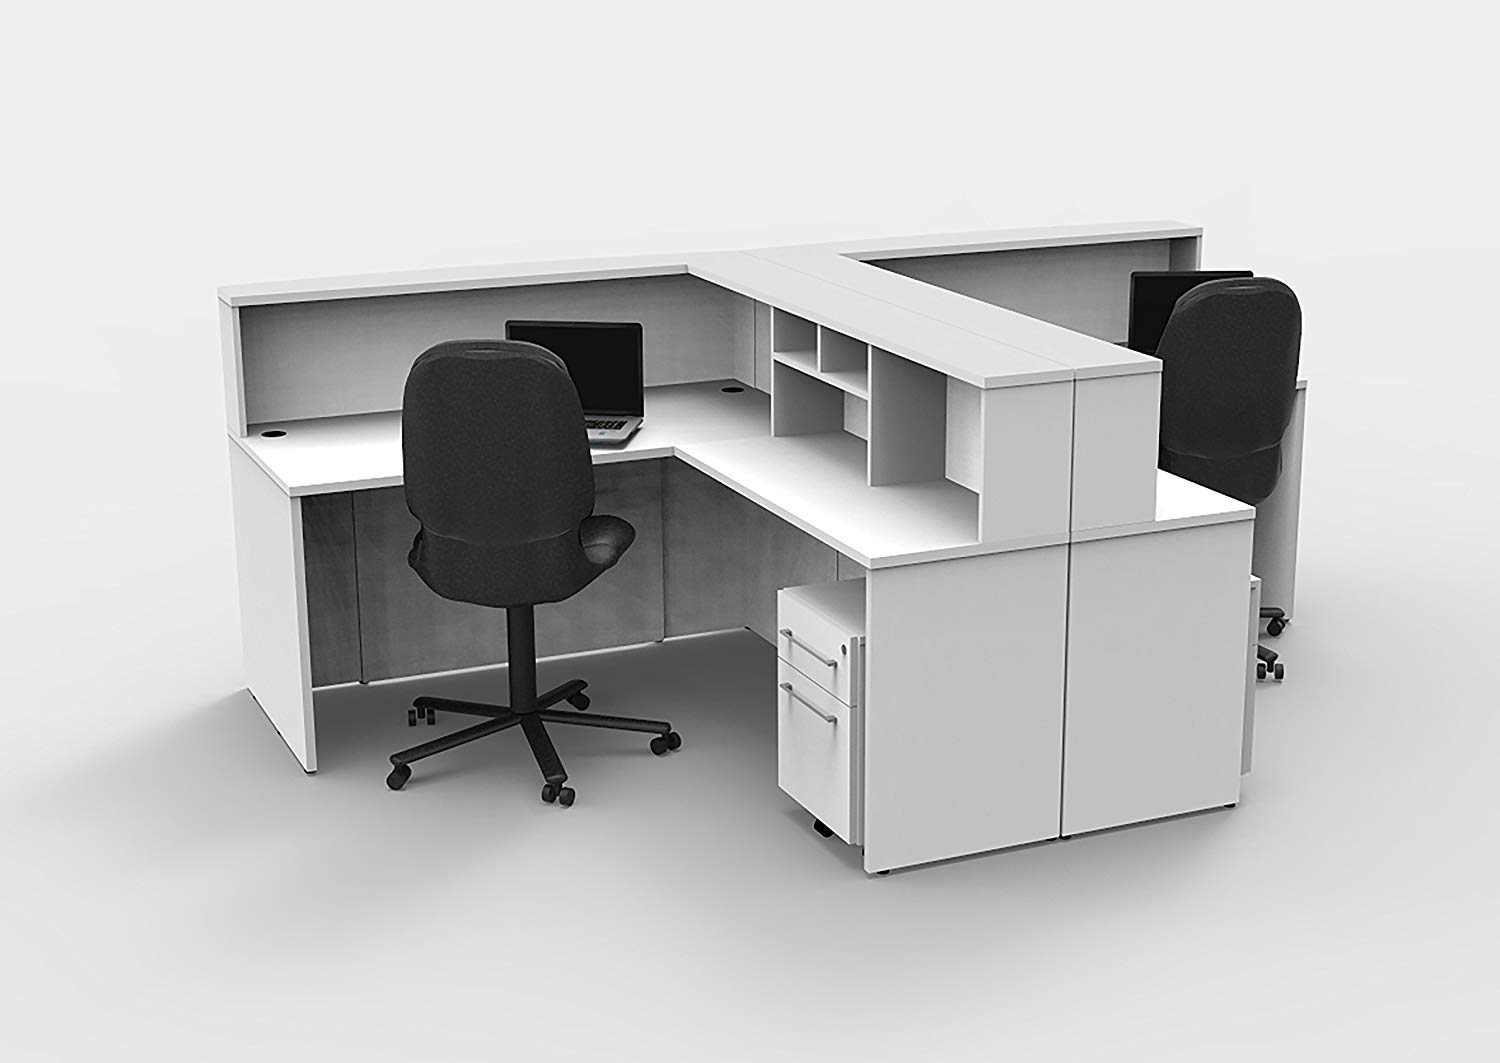 Office Reception Desk Reception Corner Collaboration Furniture Model 4311 10 Pc Group Contemporary White color. Update Your Spaces with Commercial Grade Reception Collaboration Furniture.